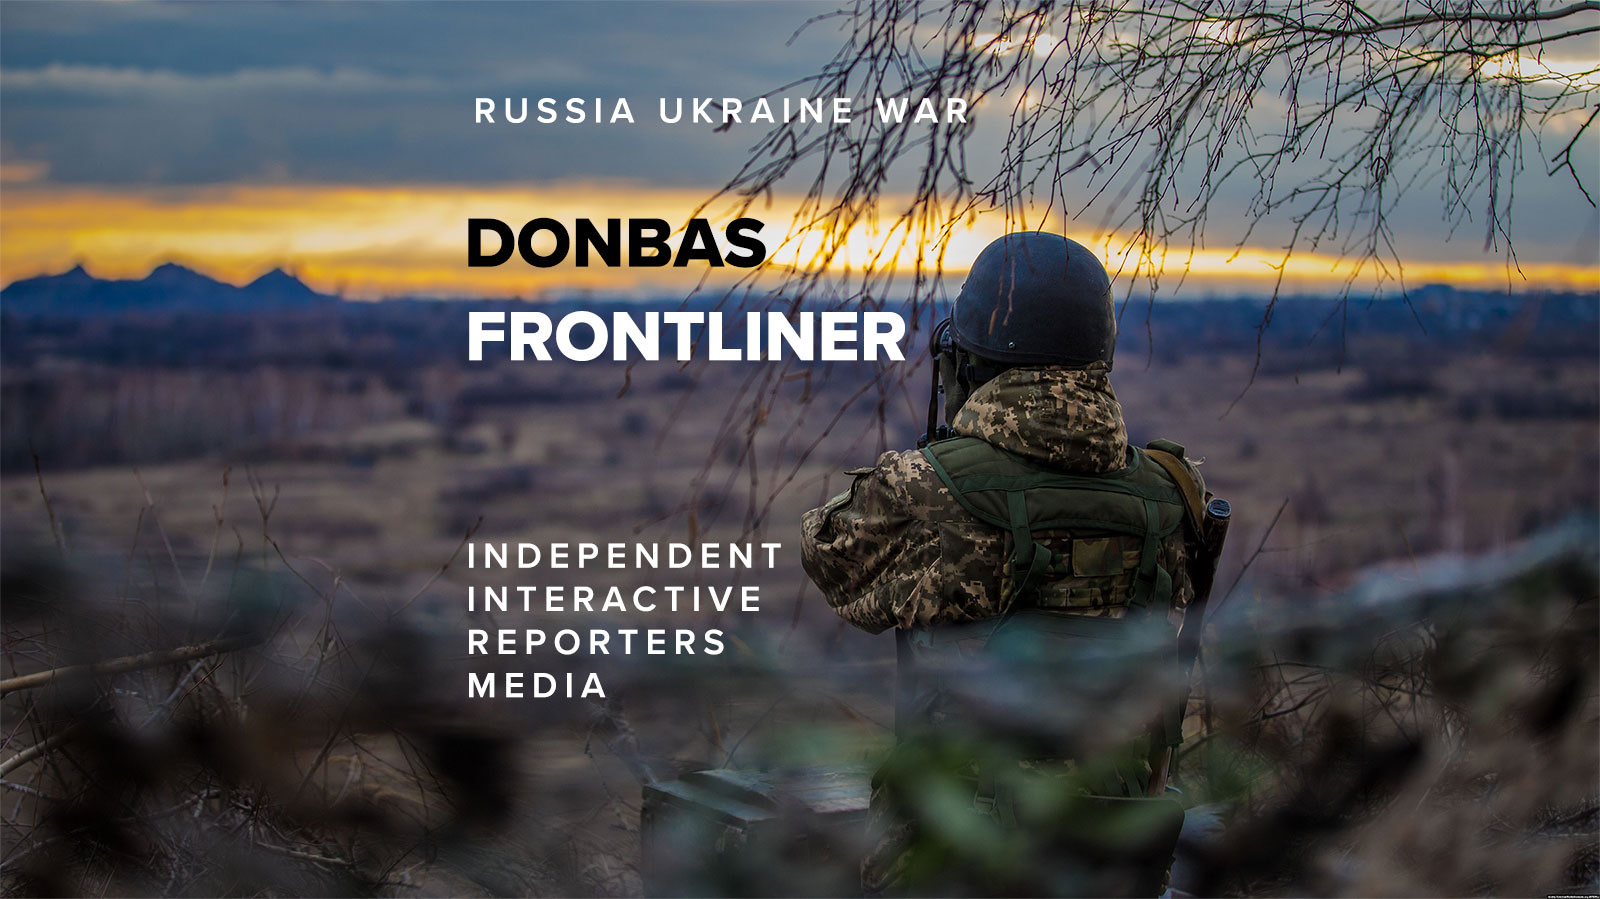 Donbas Frontliner reporters media project about Russian-Ukraine hybrid war 2021